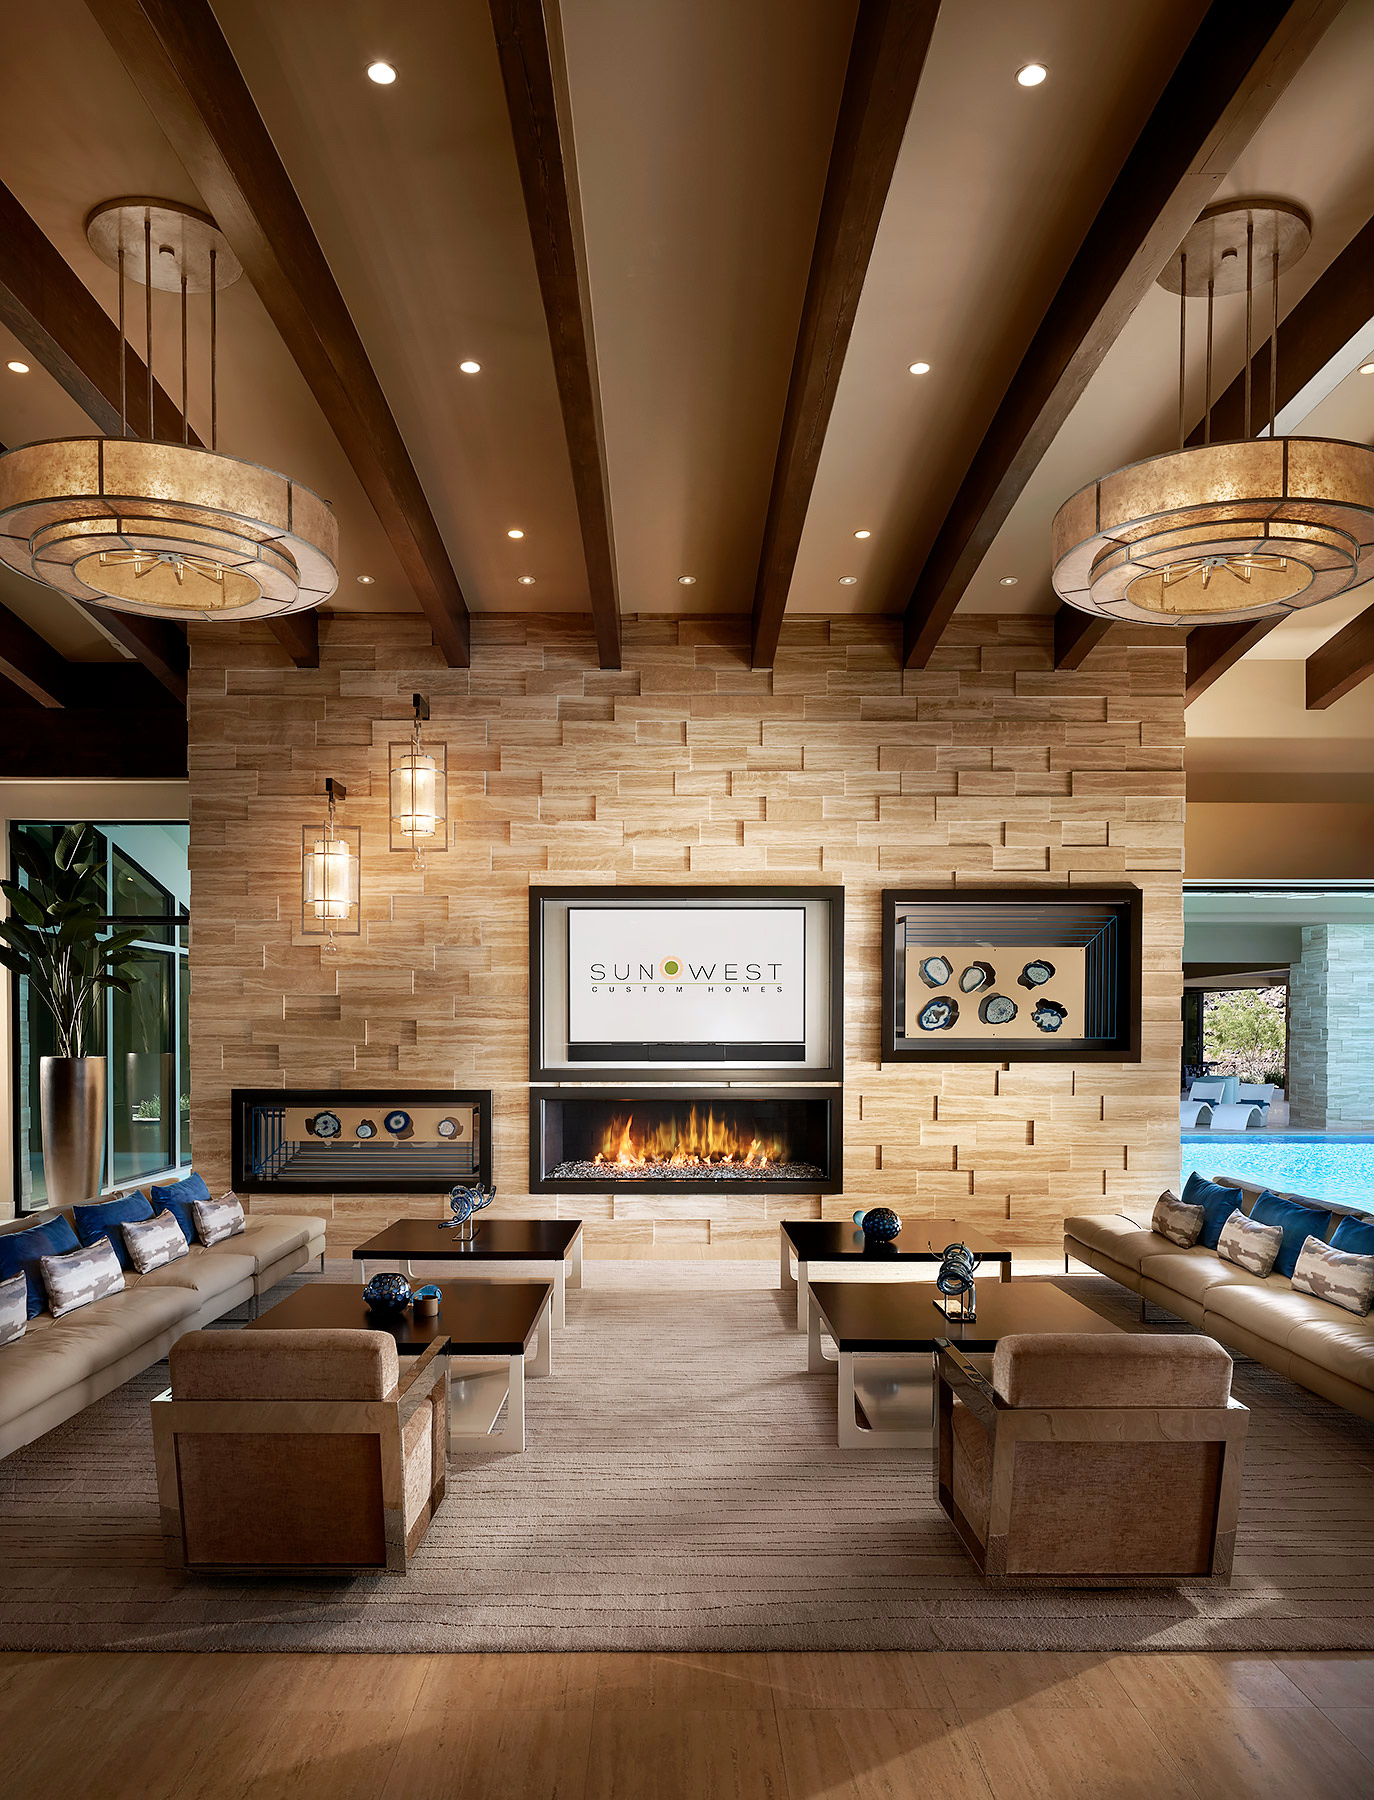 Las-Vegas-Interior-Design-Fireplace-Wall